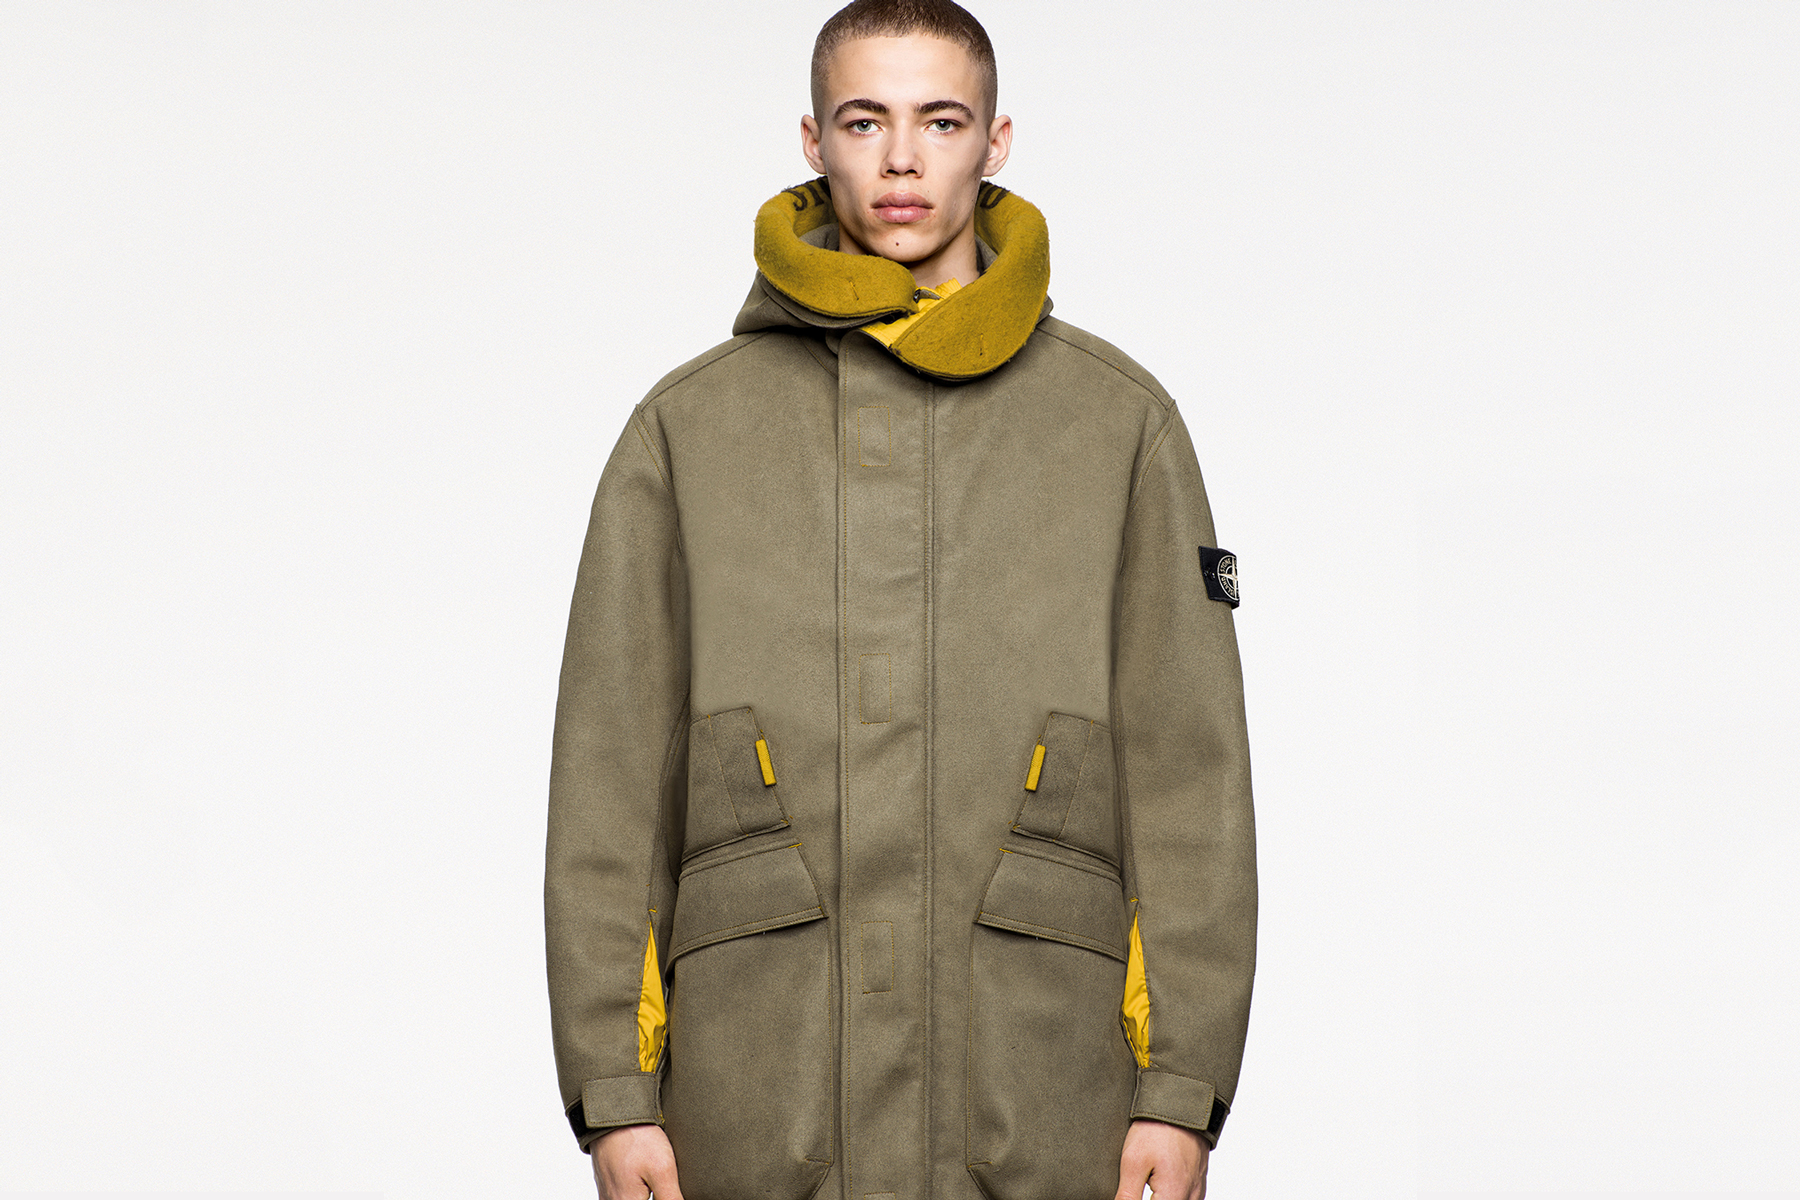 Stone Island Fall/Winter 2018